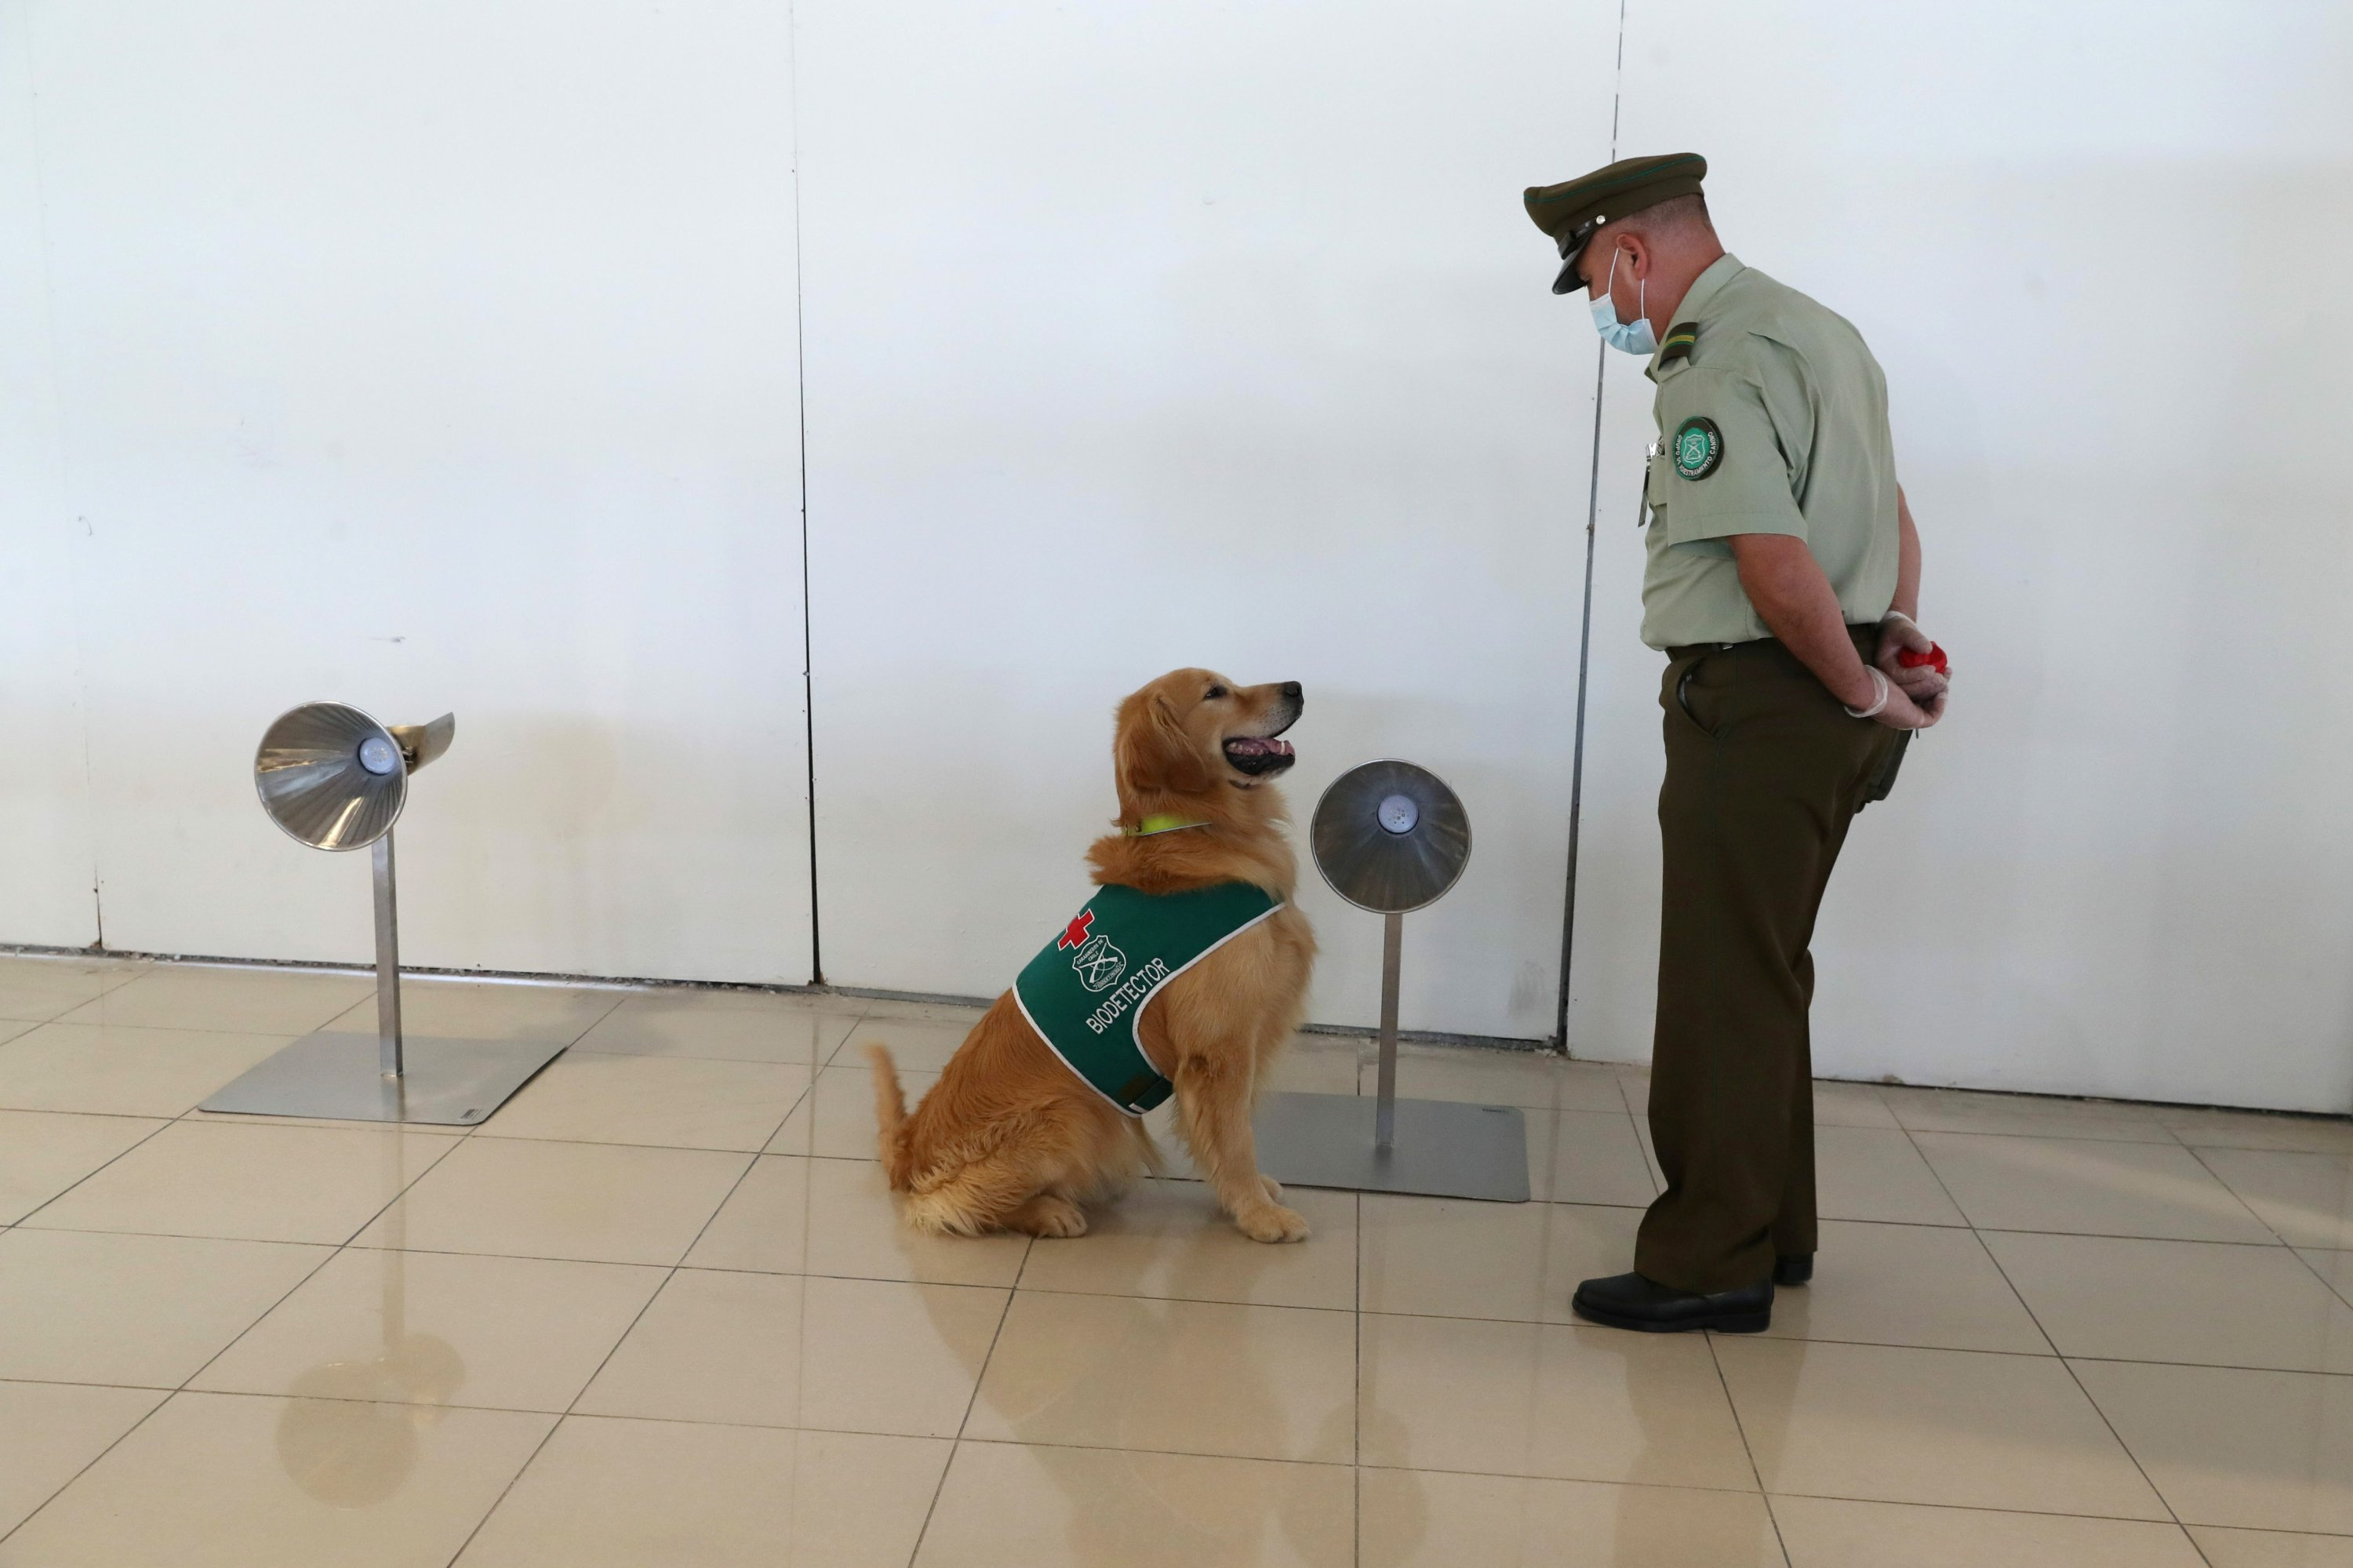 A sniffer dog trained to detect COVID-19 in highly frequented places works at the International Airport of Santiago, Chile, Dec. 21, 2020. REUTERS/Ivan Alvarado